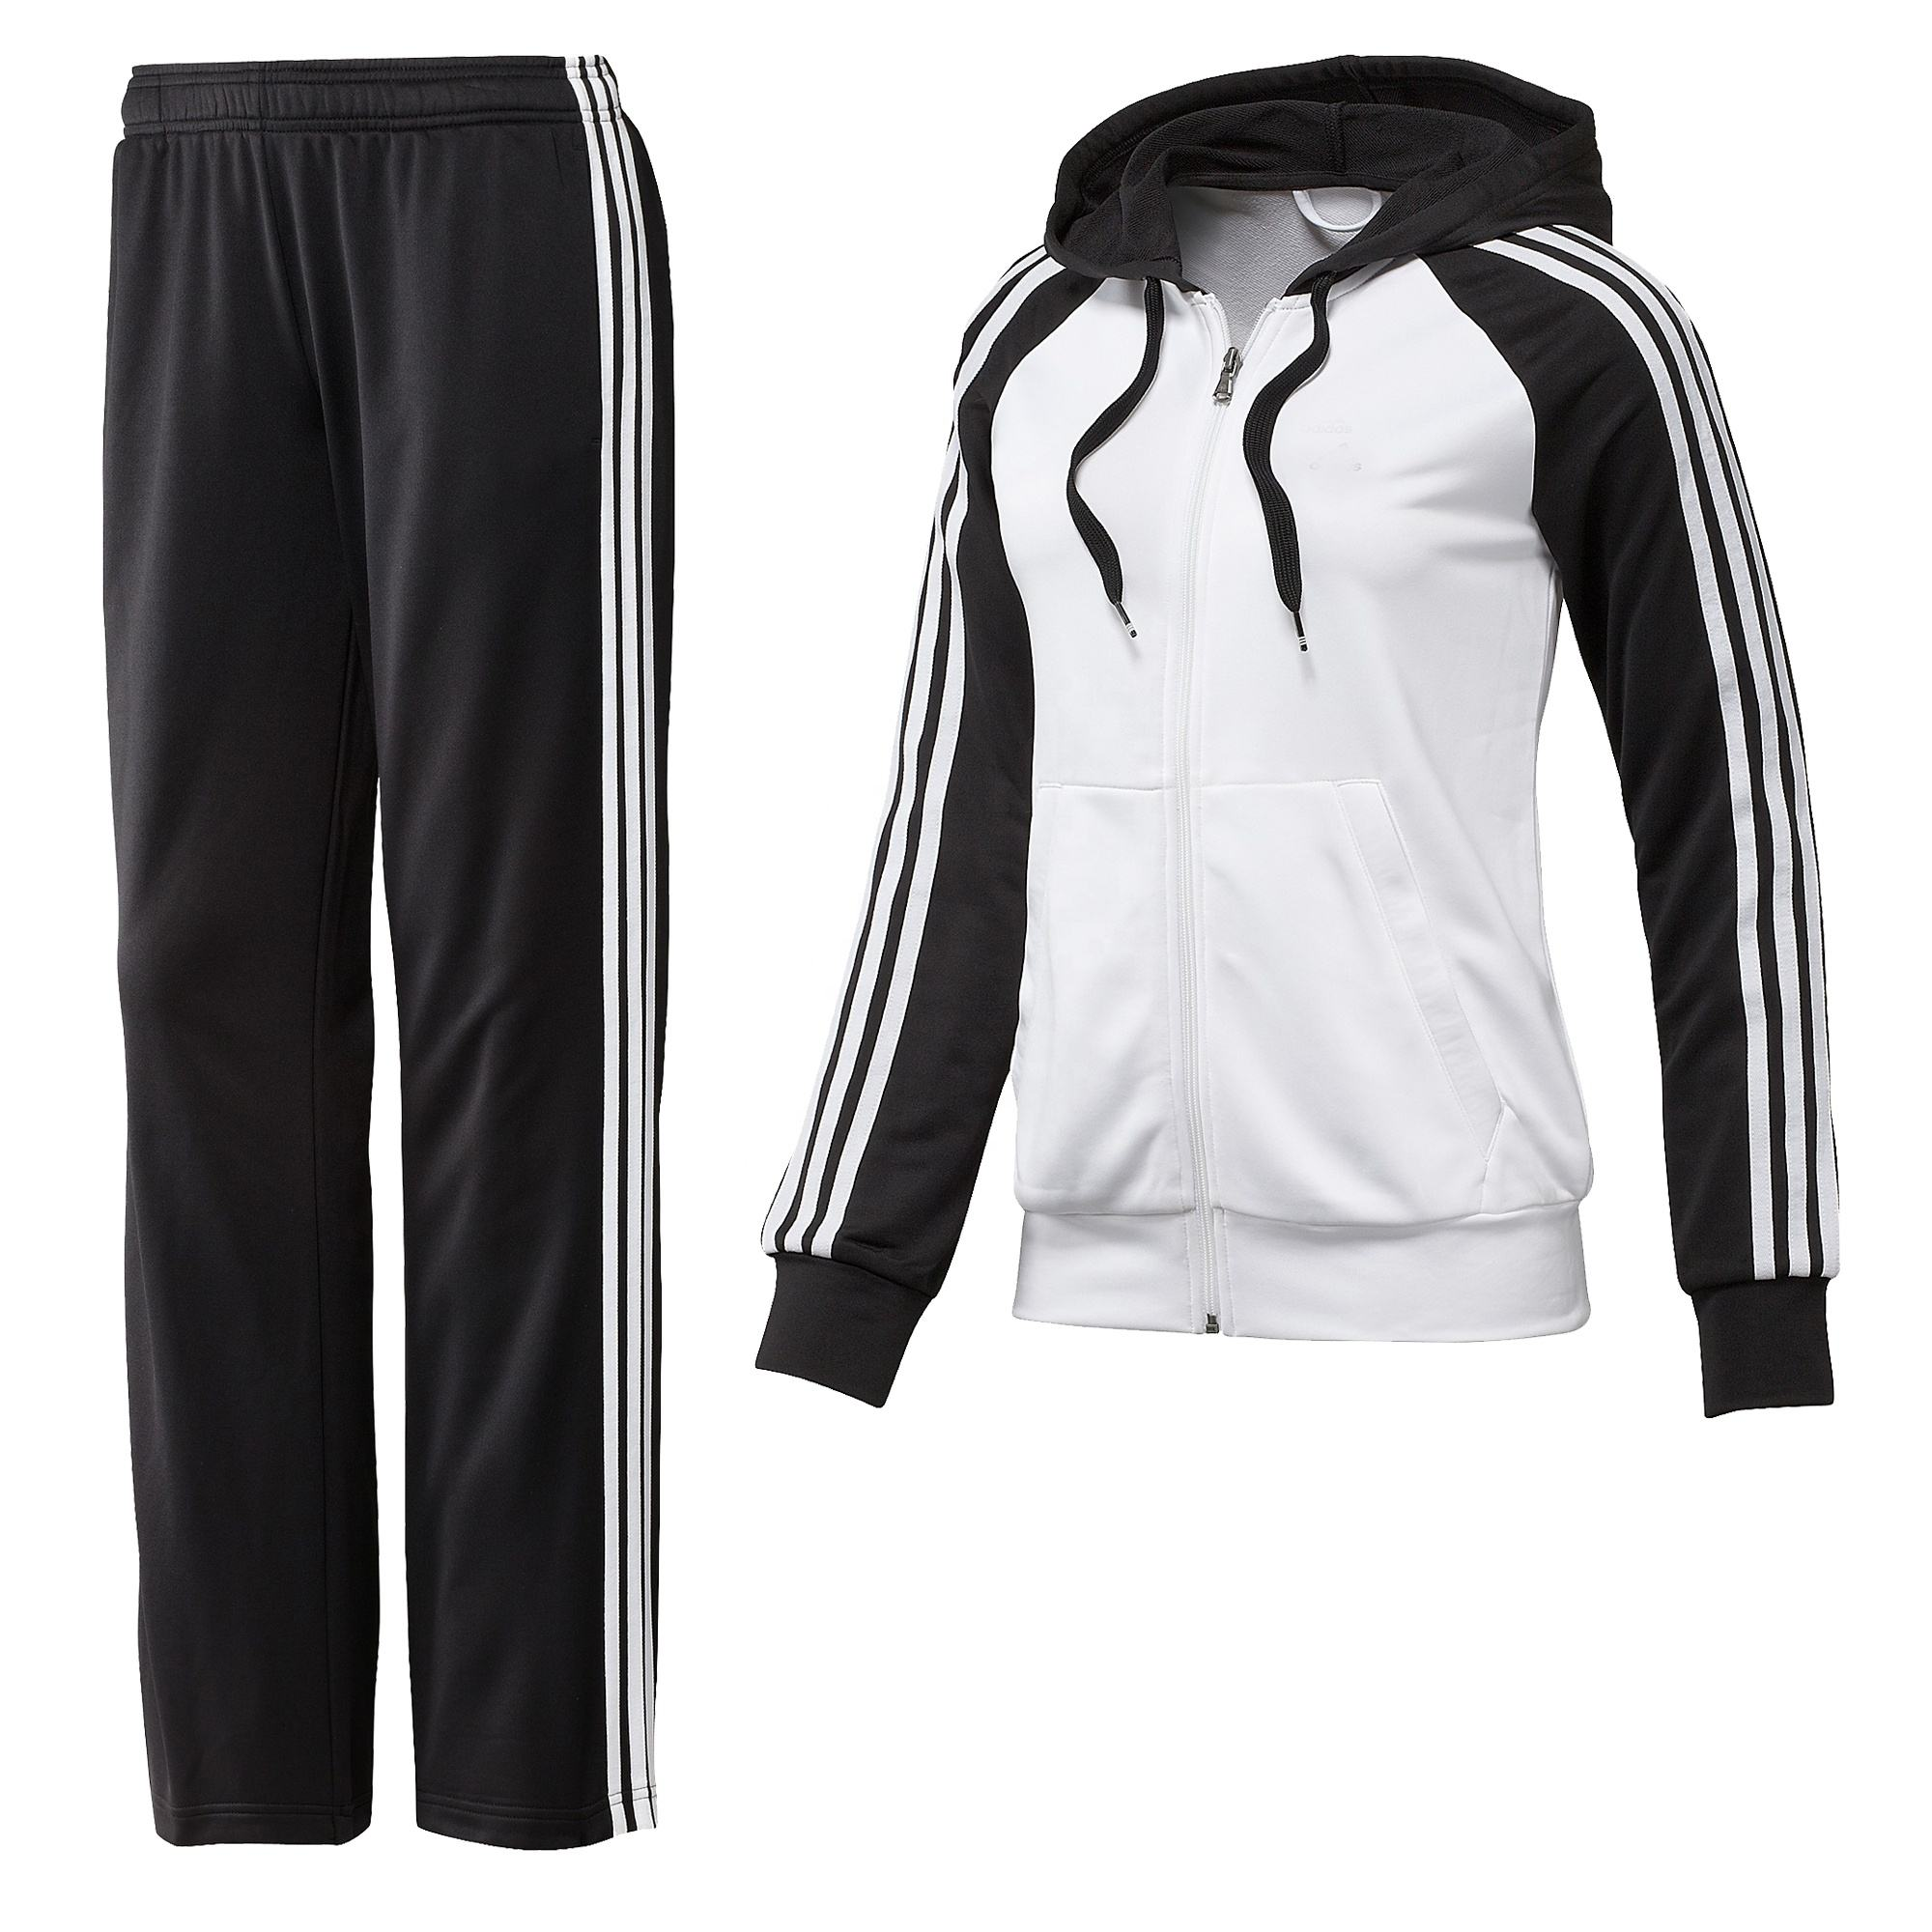 Brand blank sets custom Sport Running Training jogging gym wear tracksuit Unisex